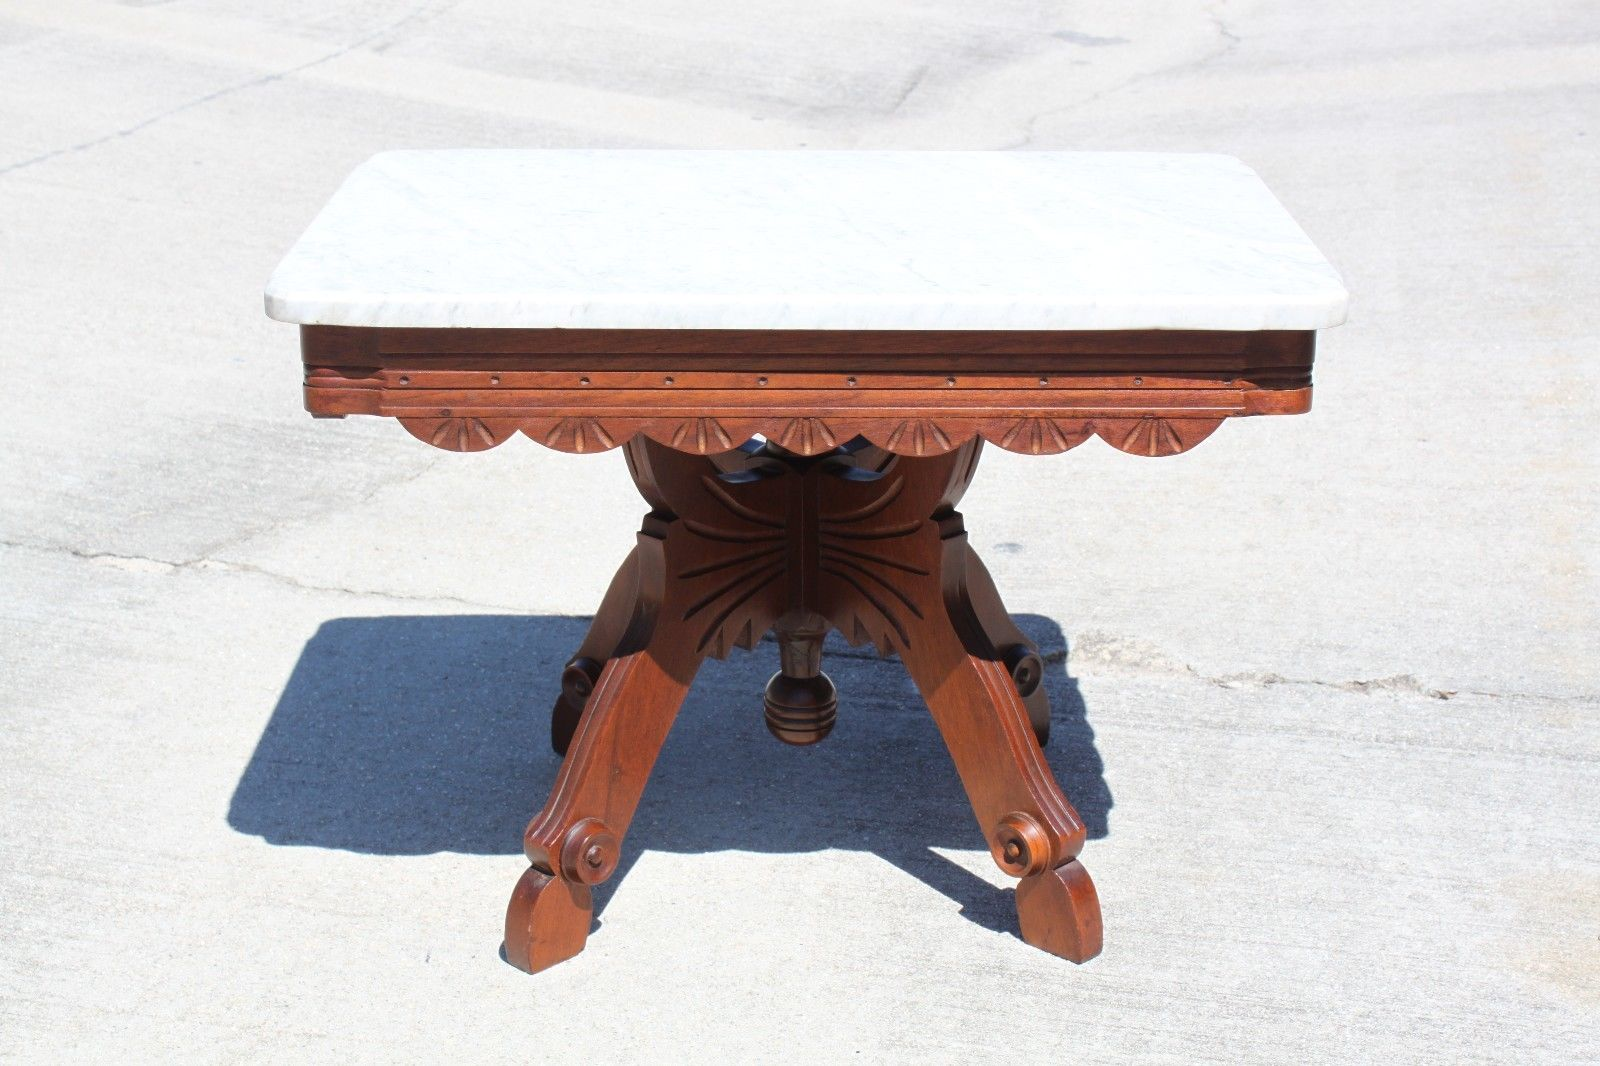 Eastlake Furniture In Alabama And The Coffee Table That